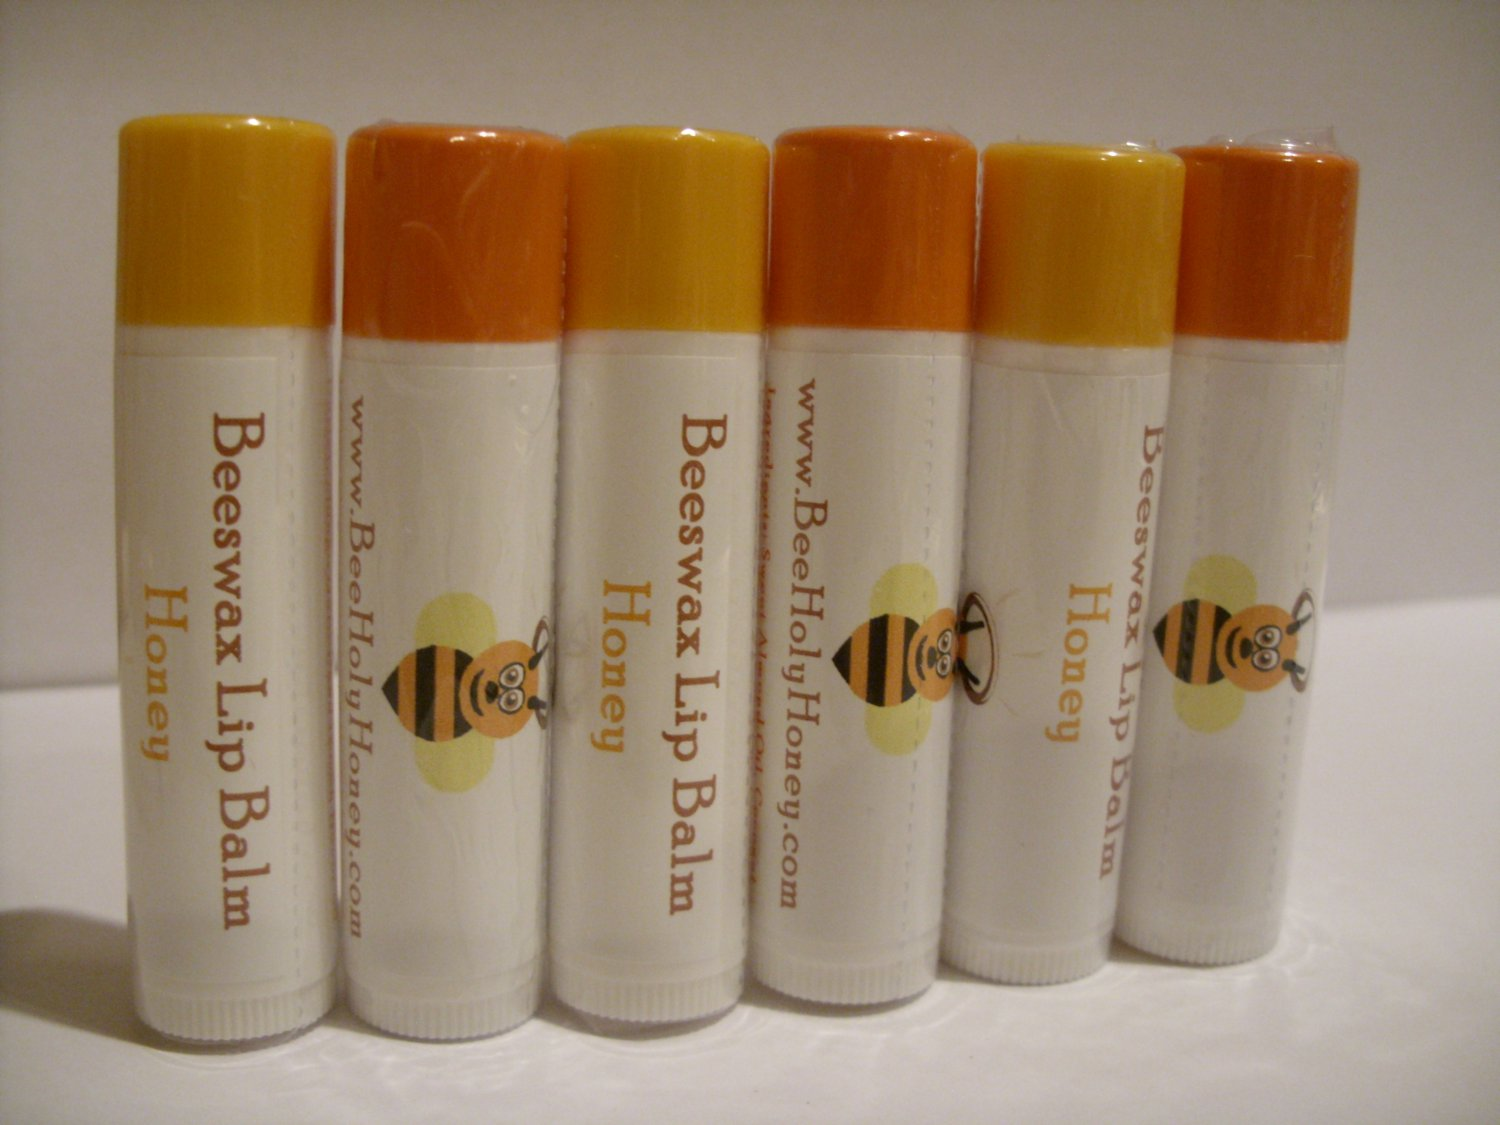 SAVE 17% - 6pk Mixed Flavors Beeswax Lip Balm . Item # LB-MX-6